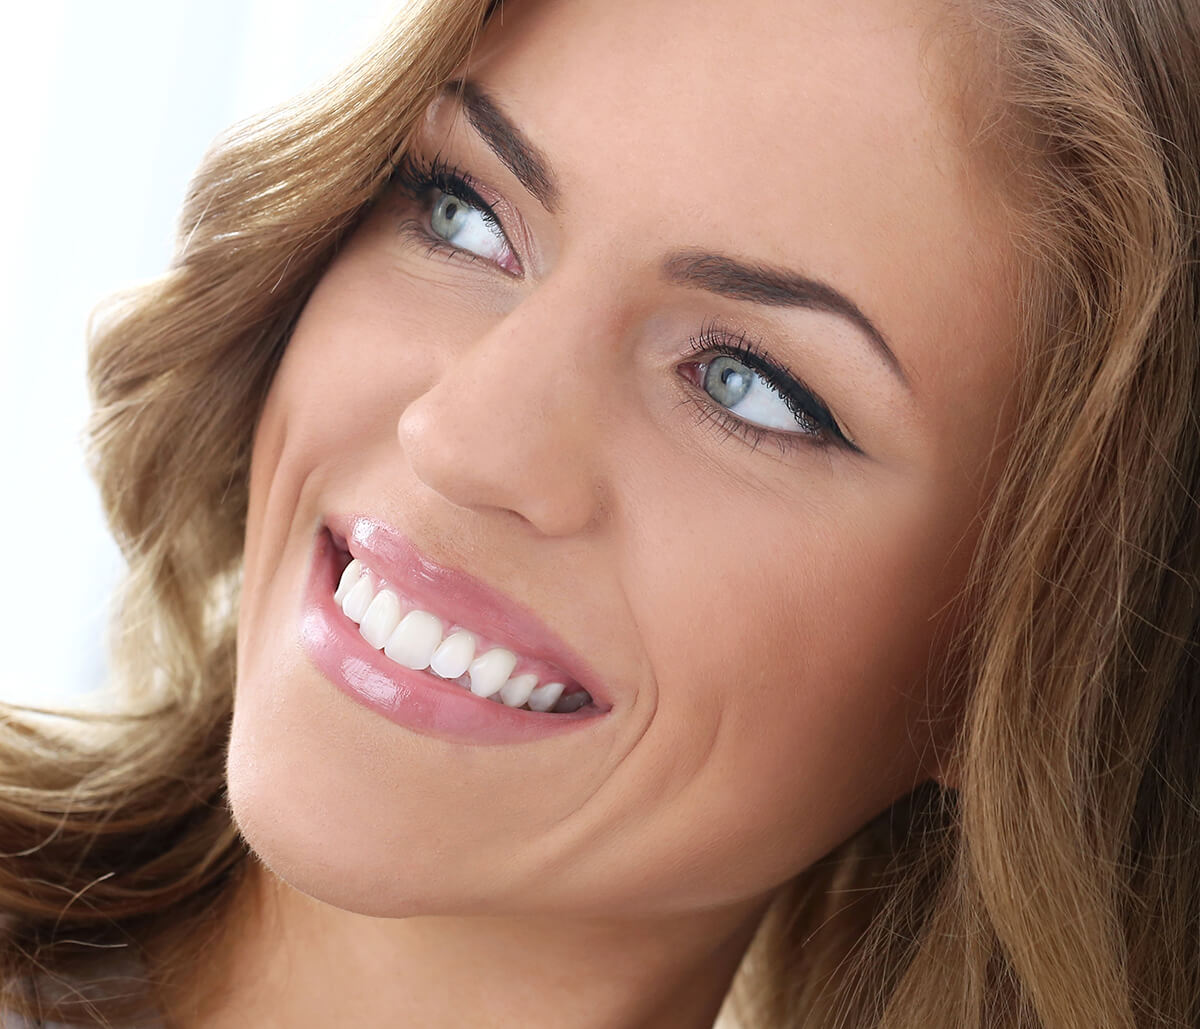 In Fort Lauderdale Area Dentist Emphasizes the Connection Between the 29th Second Premolar Tooth and the Human Body